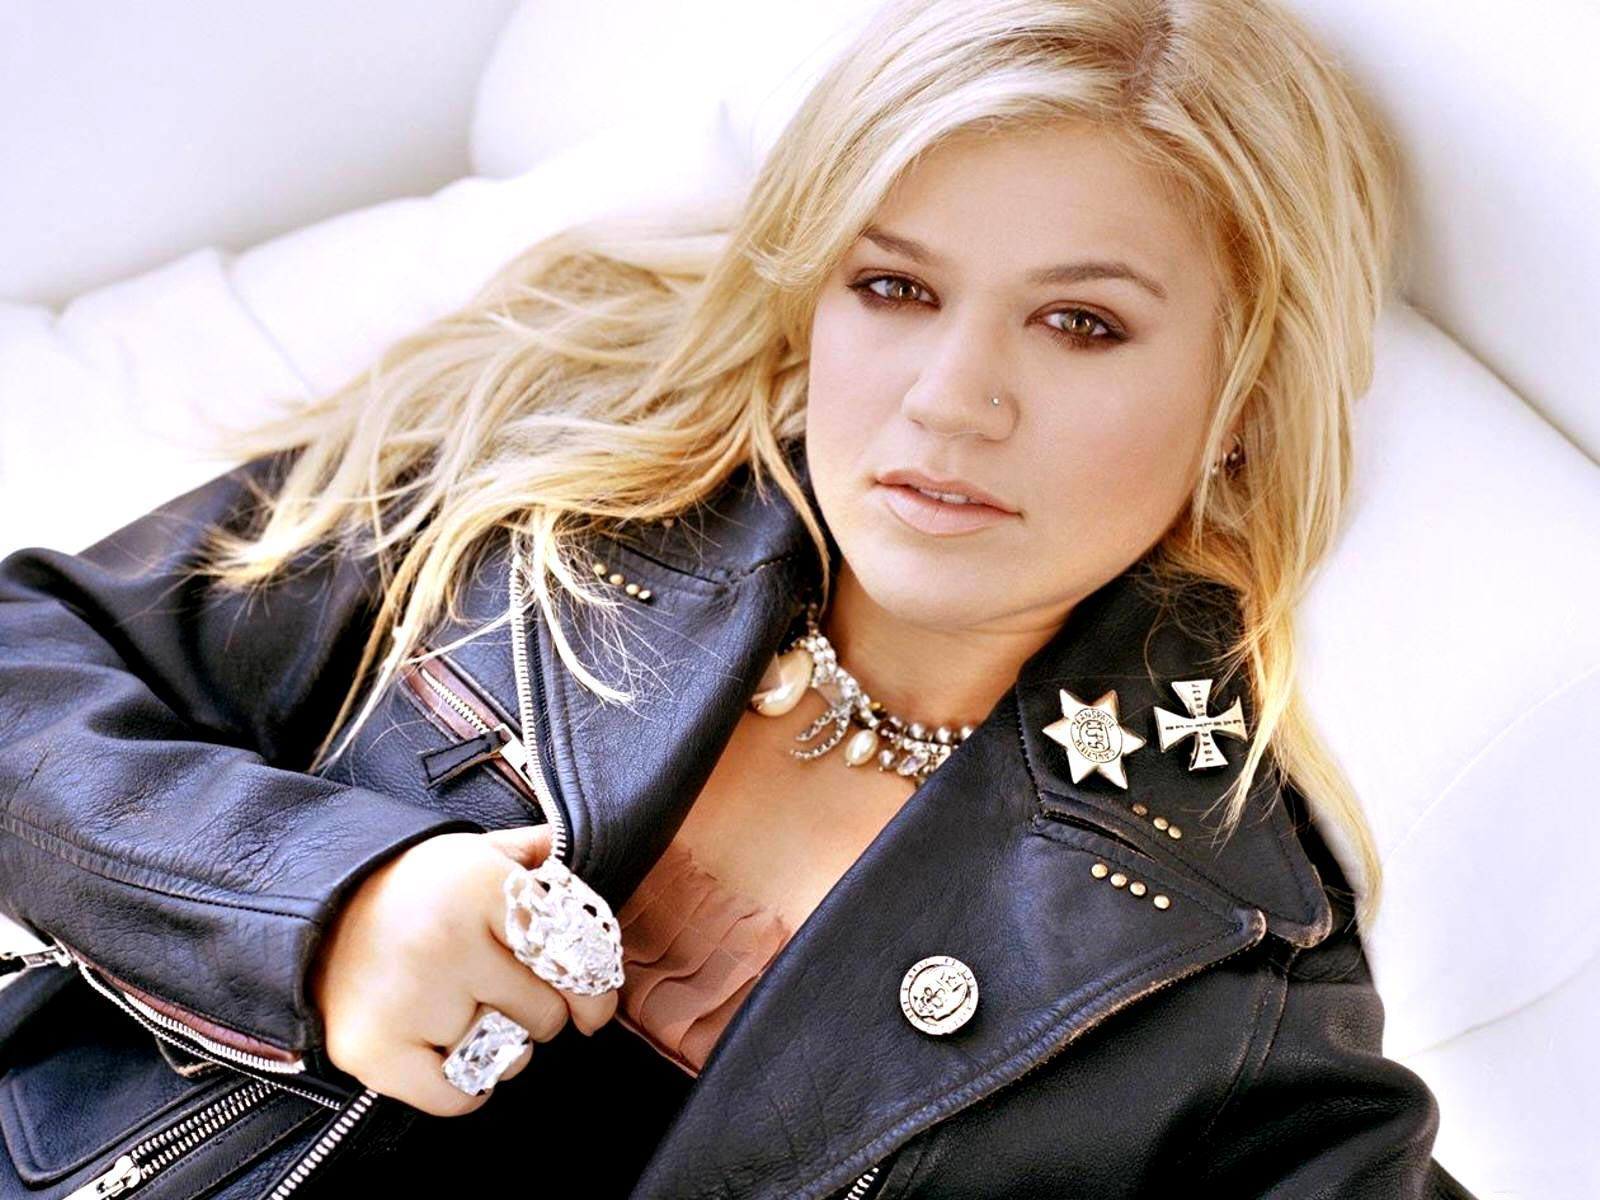 Listen to Kelly Clarkson Radio free! Stream songs by Kelly Clarkson amp similar artists plus get the latest info on Kelly Clarkson!